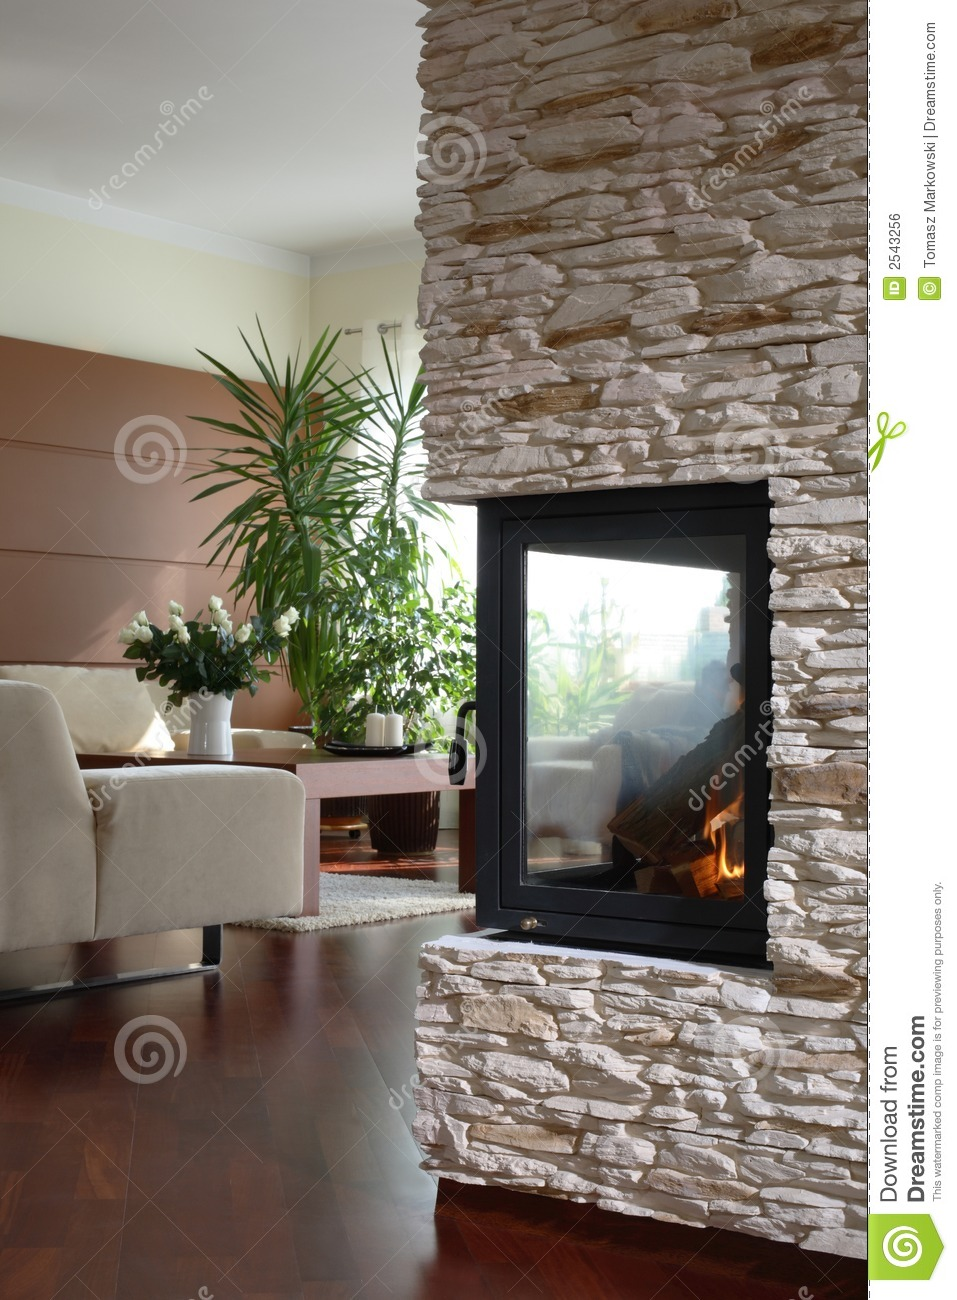 fireplace in modern living room stock photo image 2543256. Black Bedroom Furniture Sets. Home Design Ideas